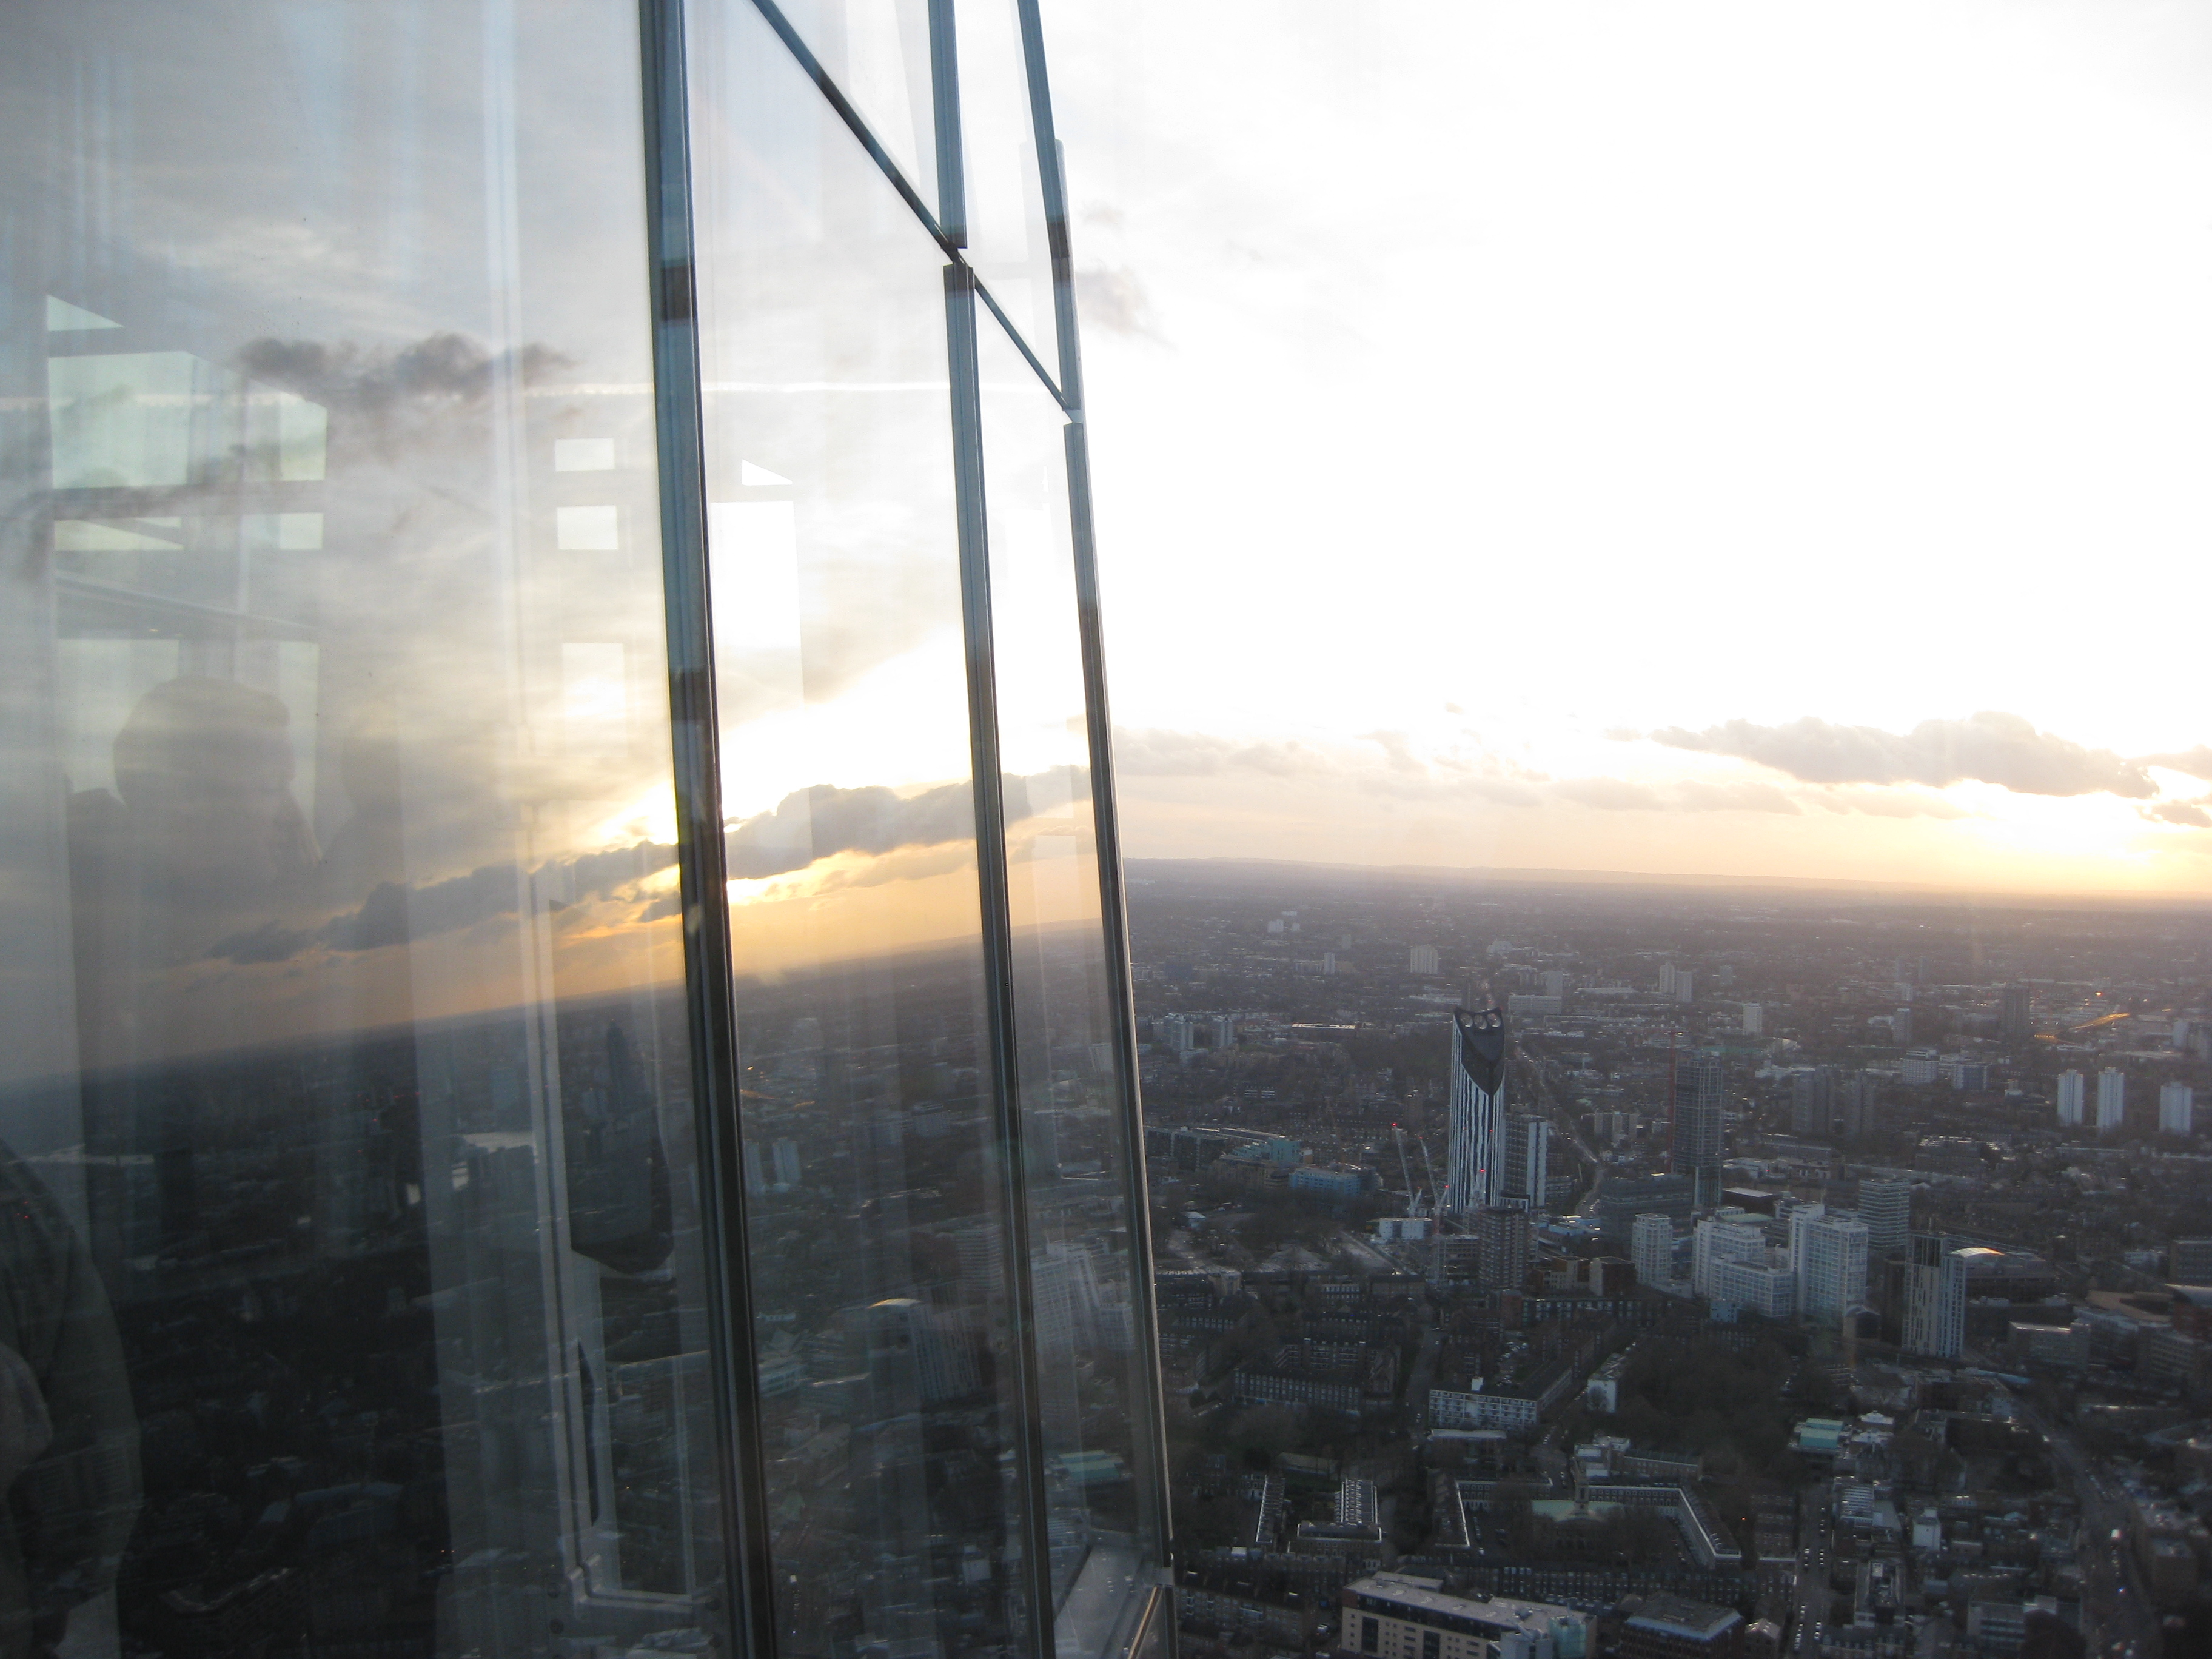 View of the Strata SE1 from The Shard, London